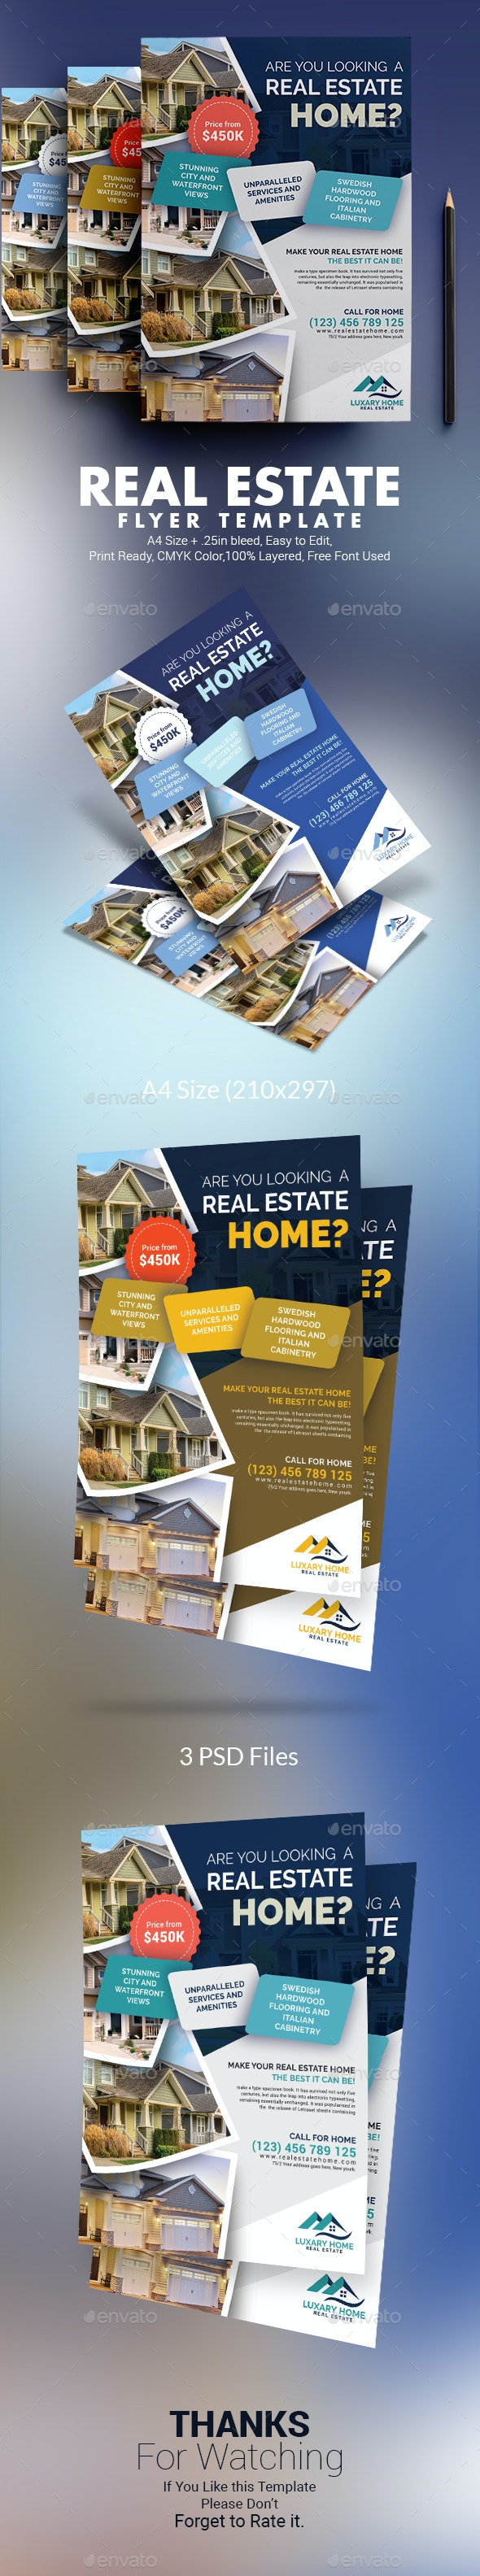 Real Estate Flyer Template - Corporate Flyers